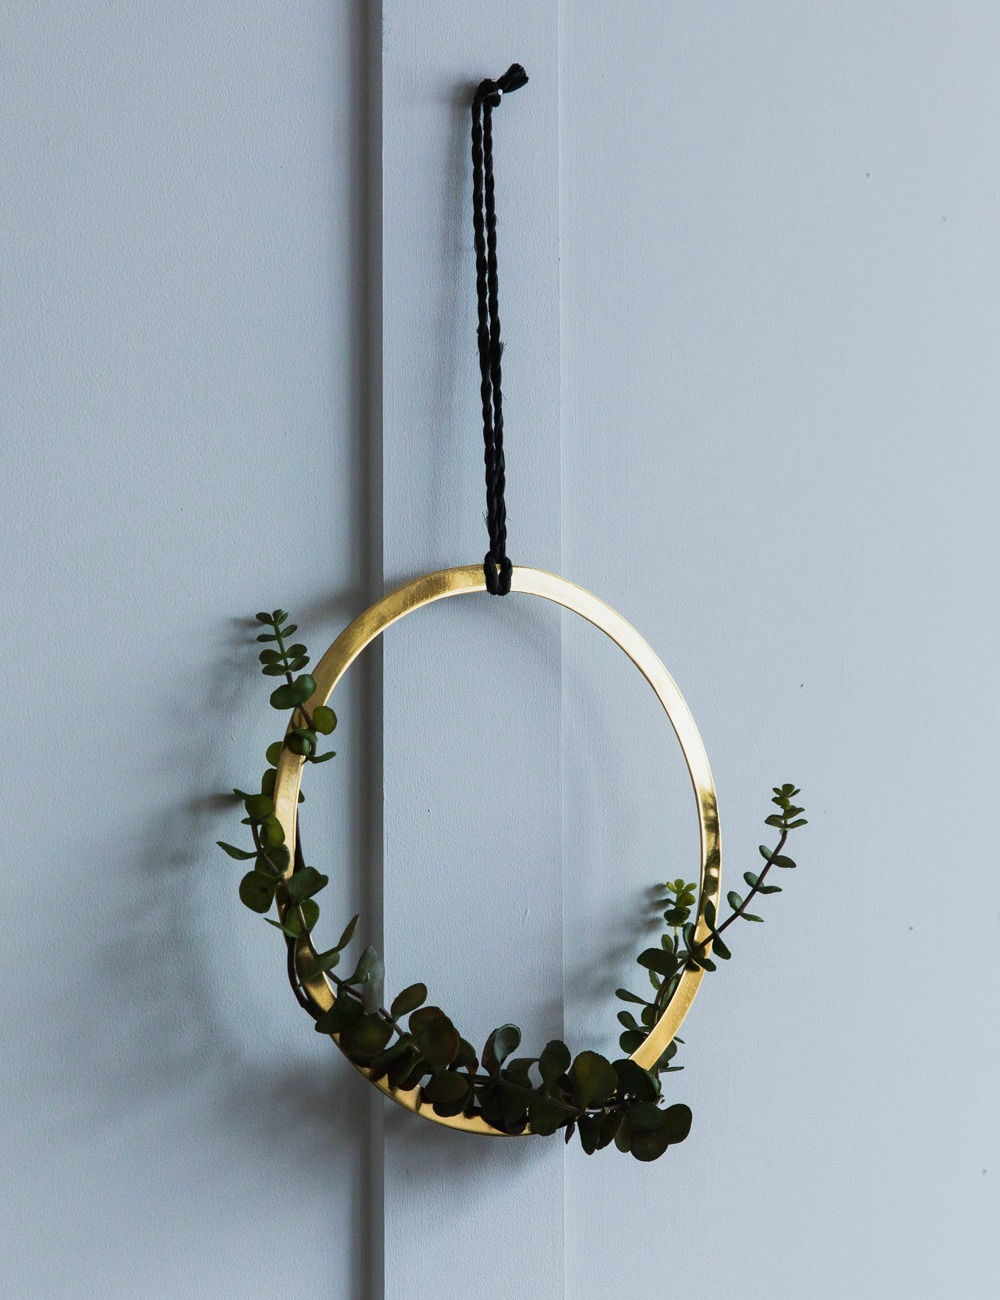 Gold Hanging Ring Decoration